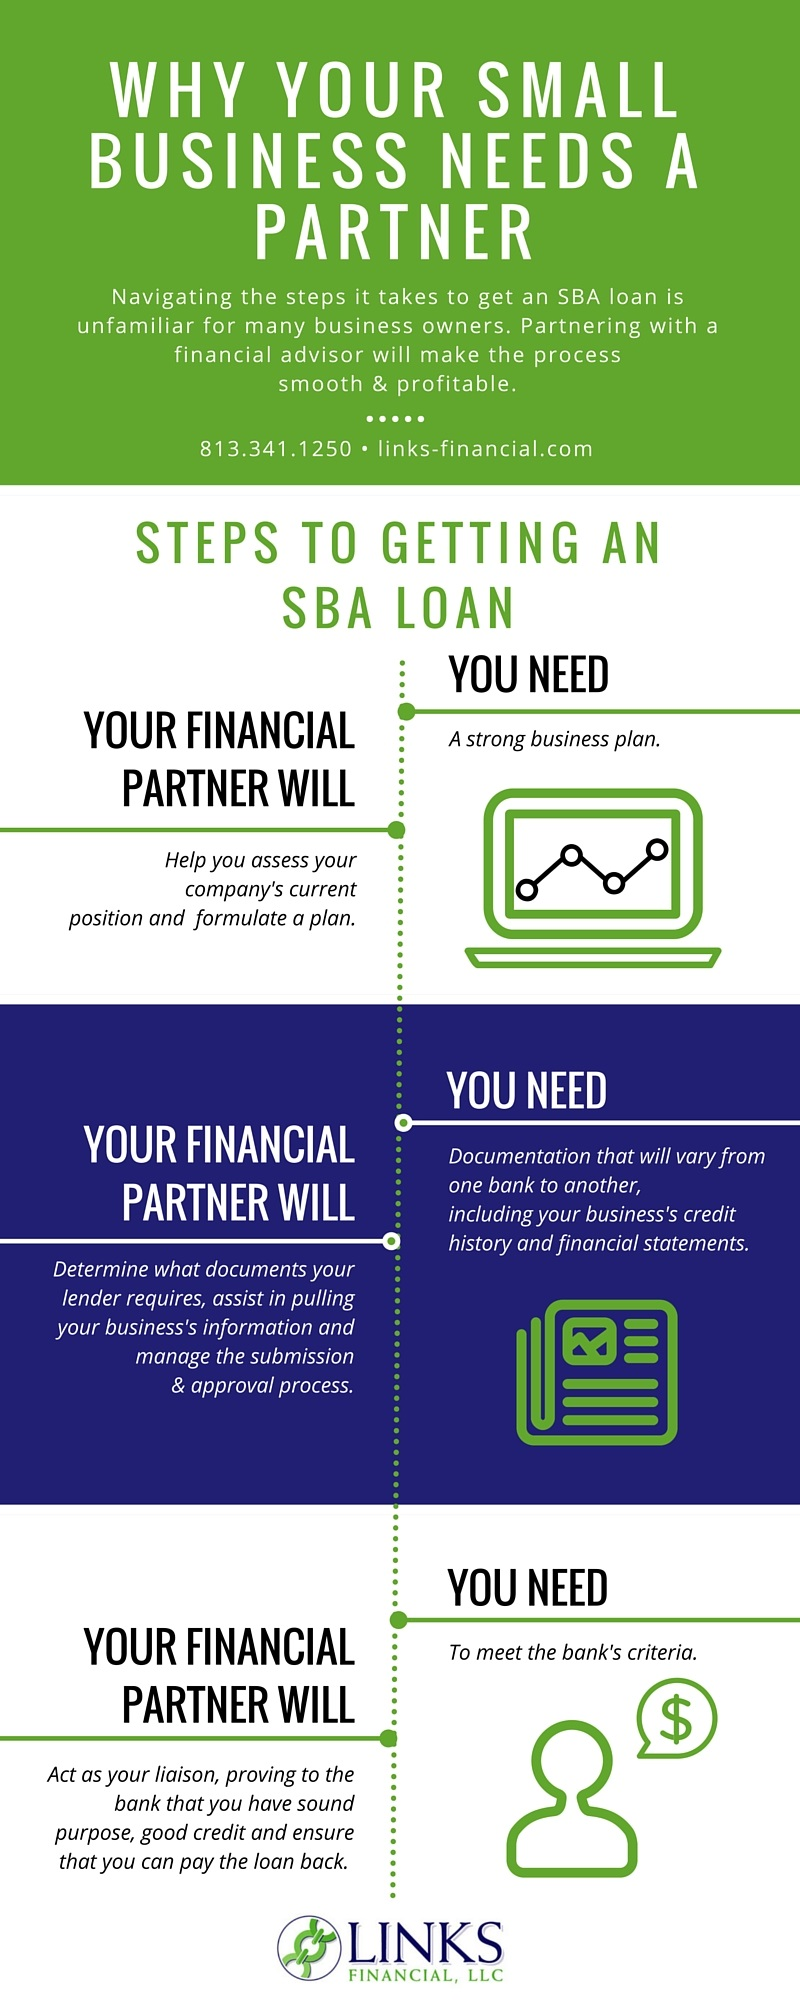 how to get an SBA loan infographic